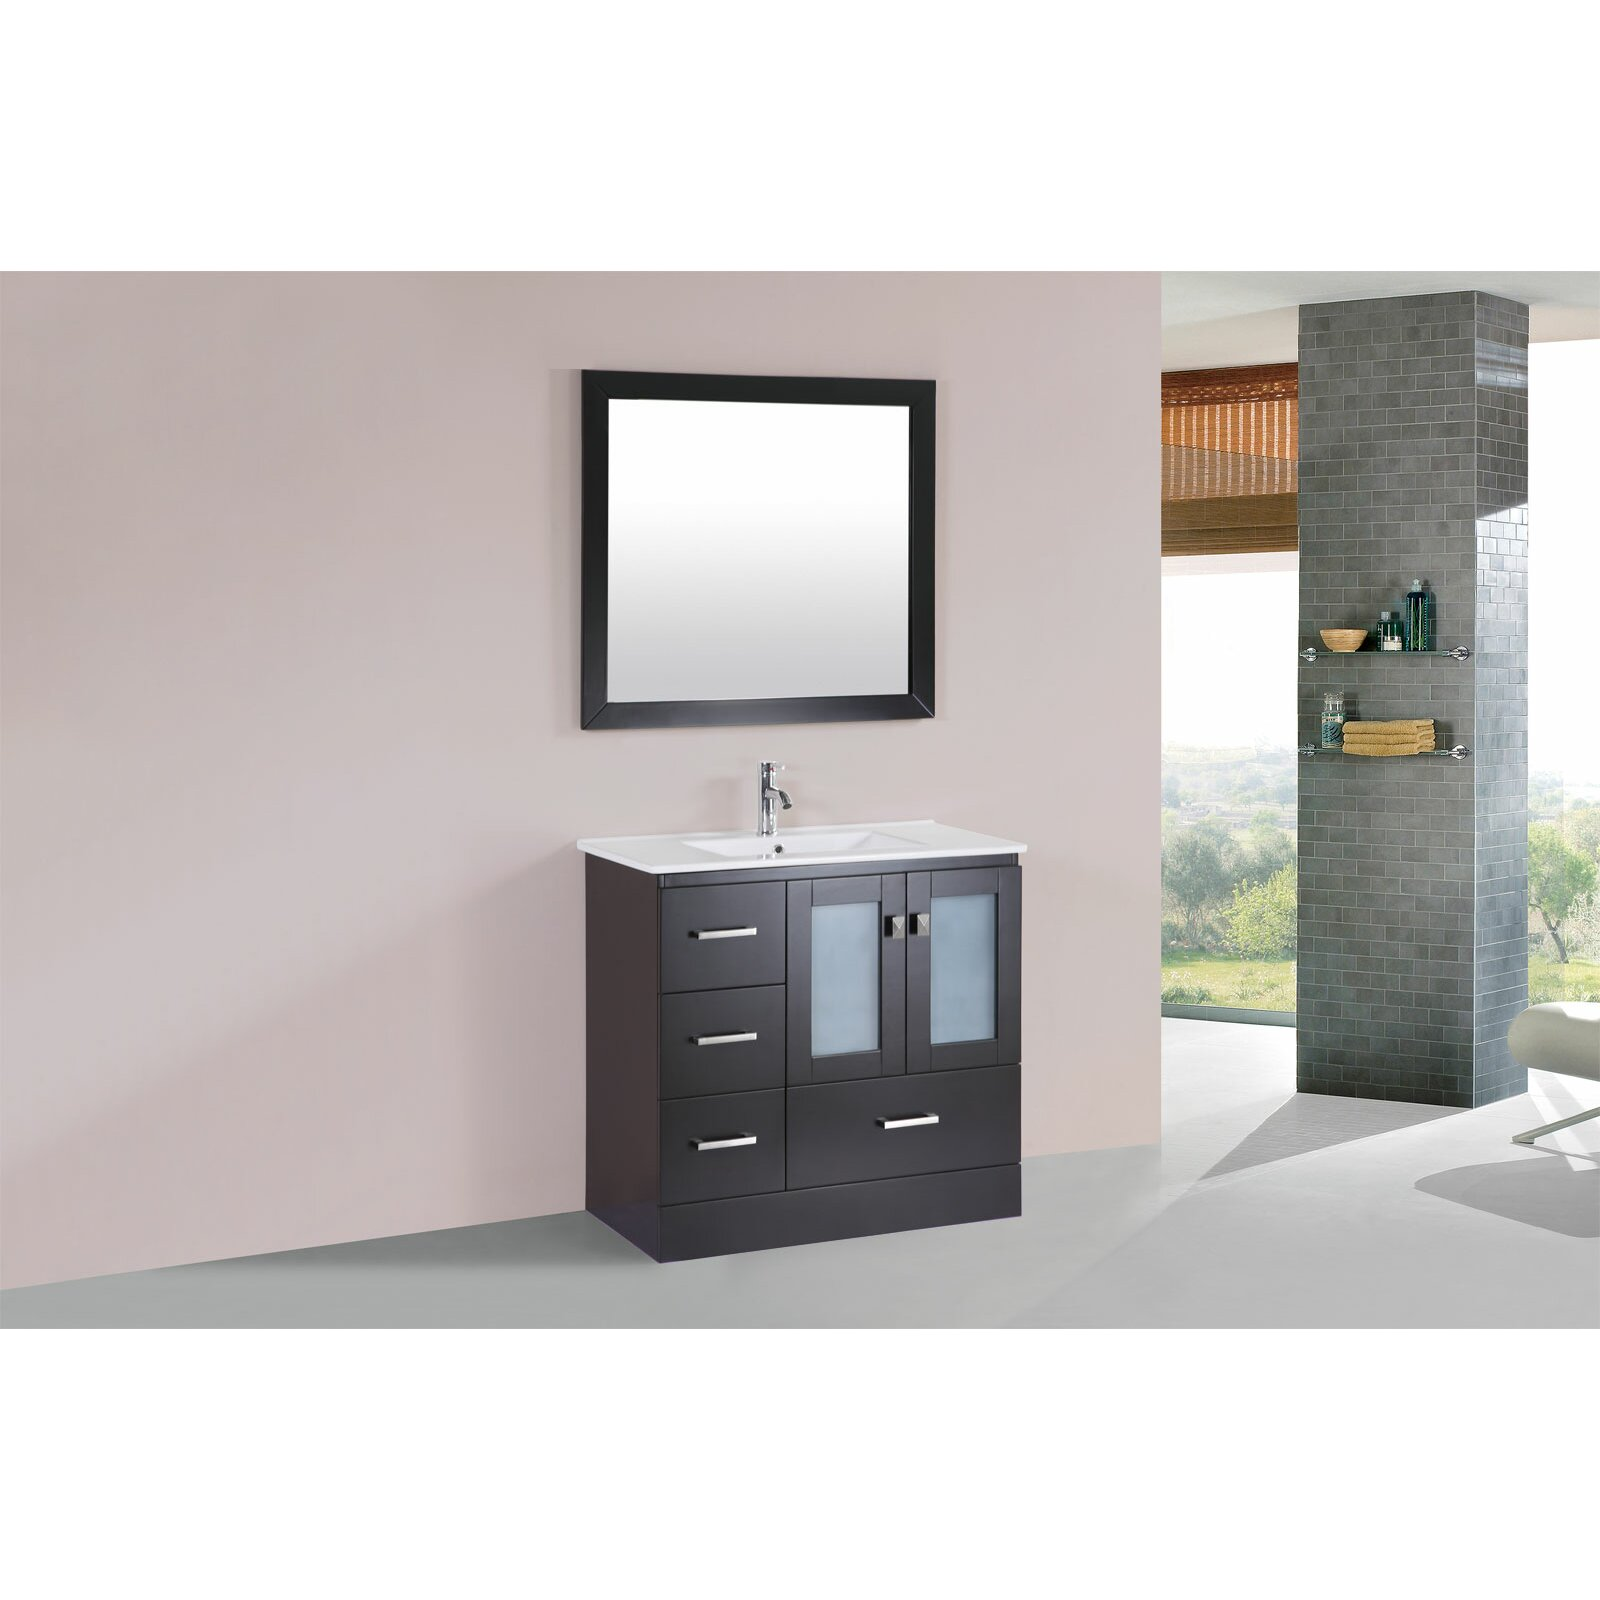 36 single modern bathroom left side cabinet vanity set